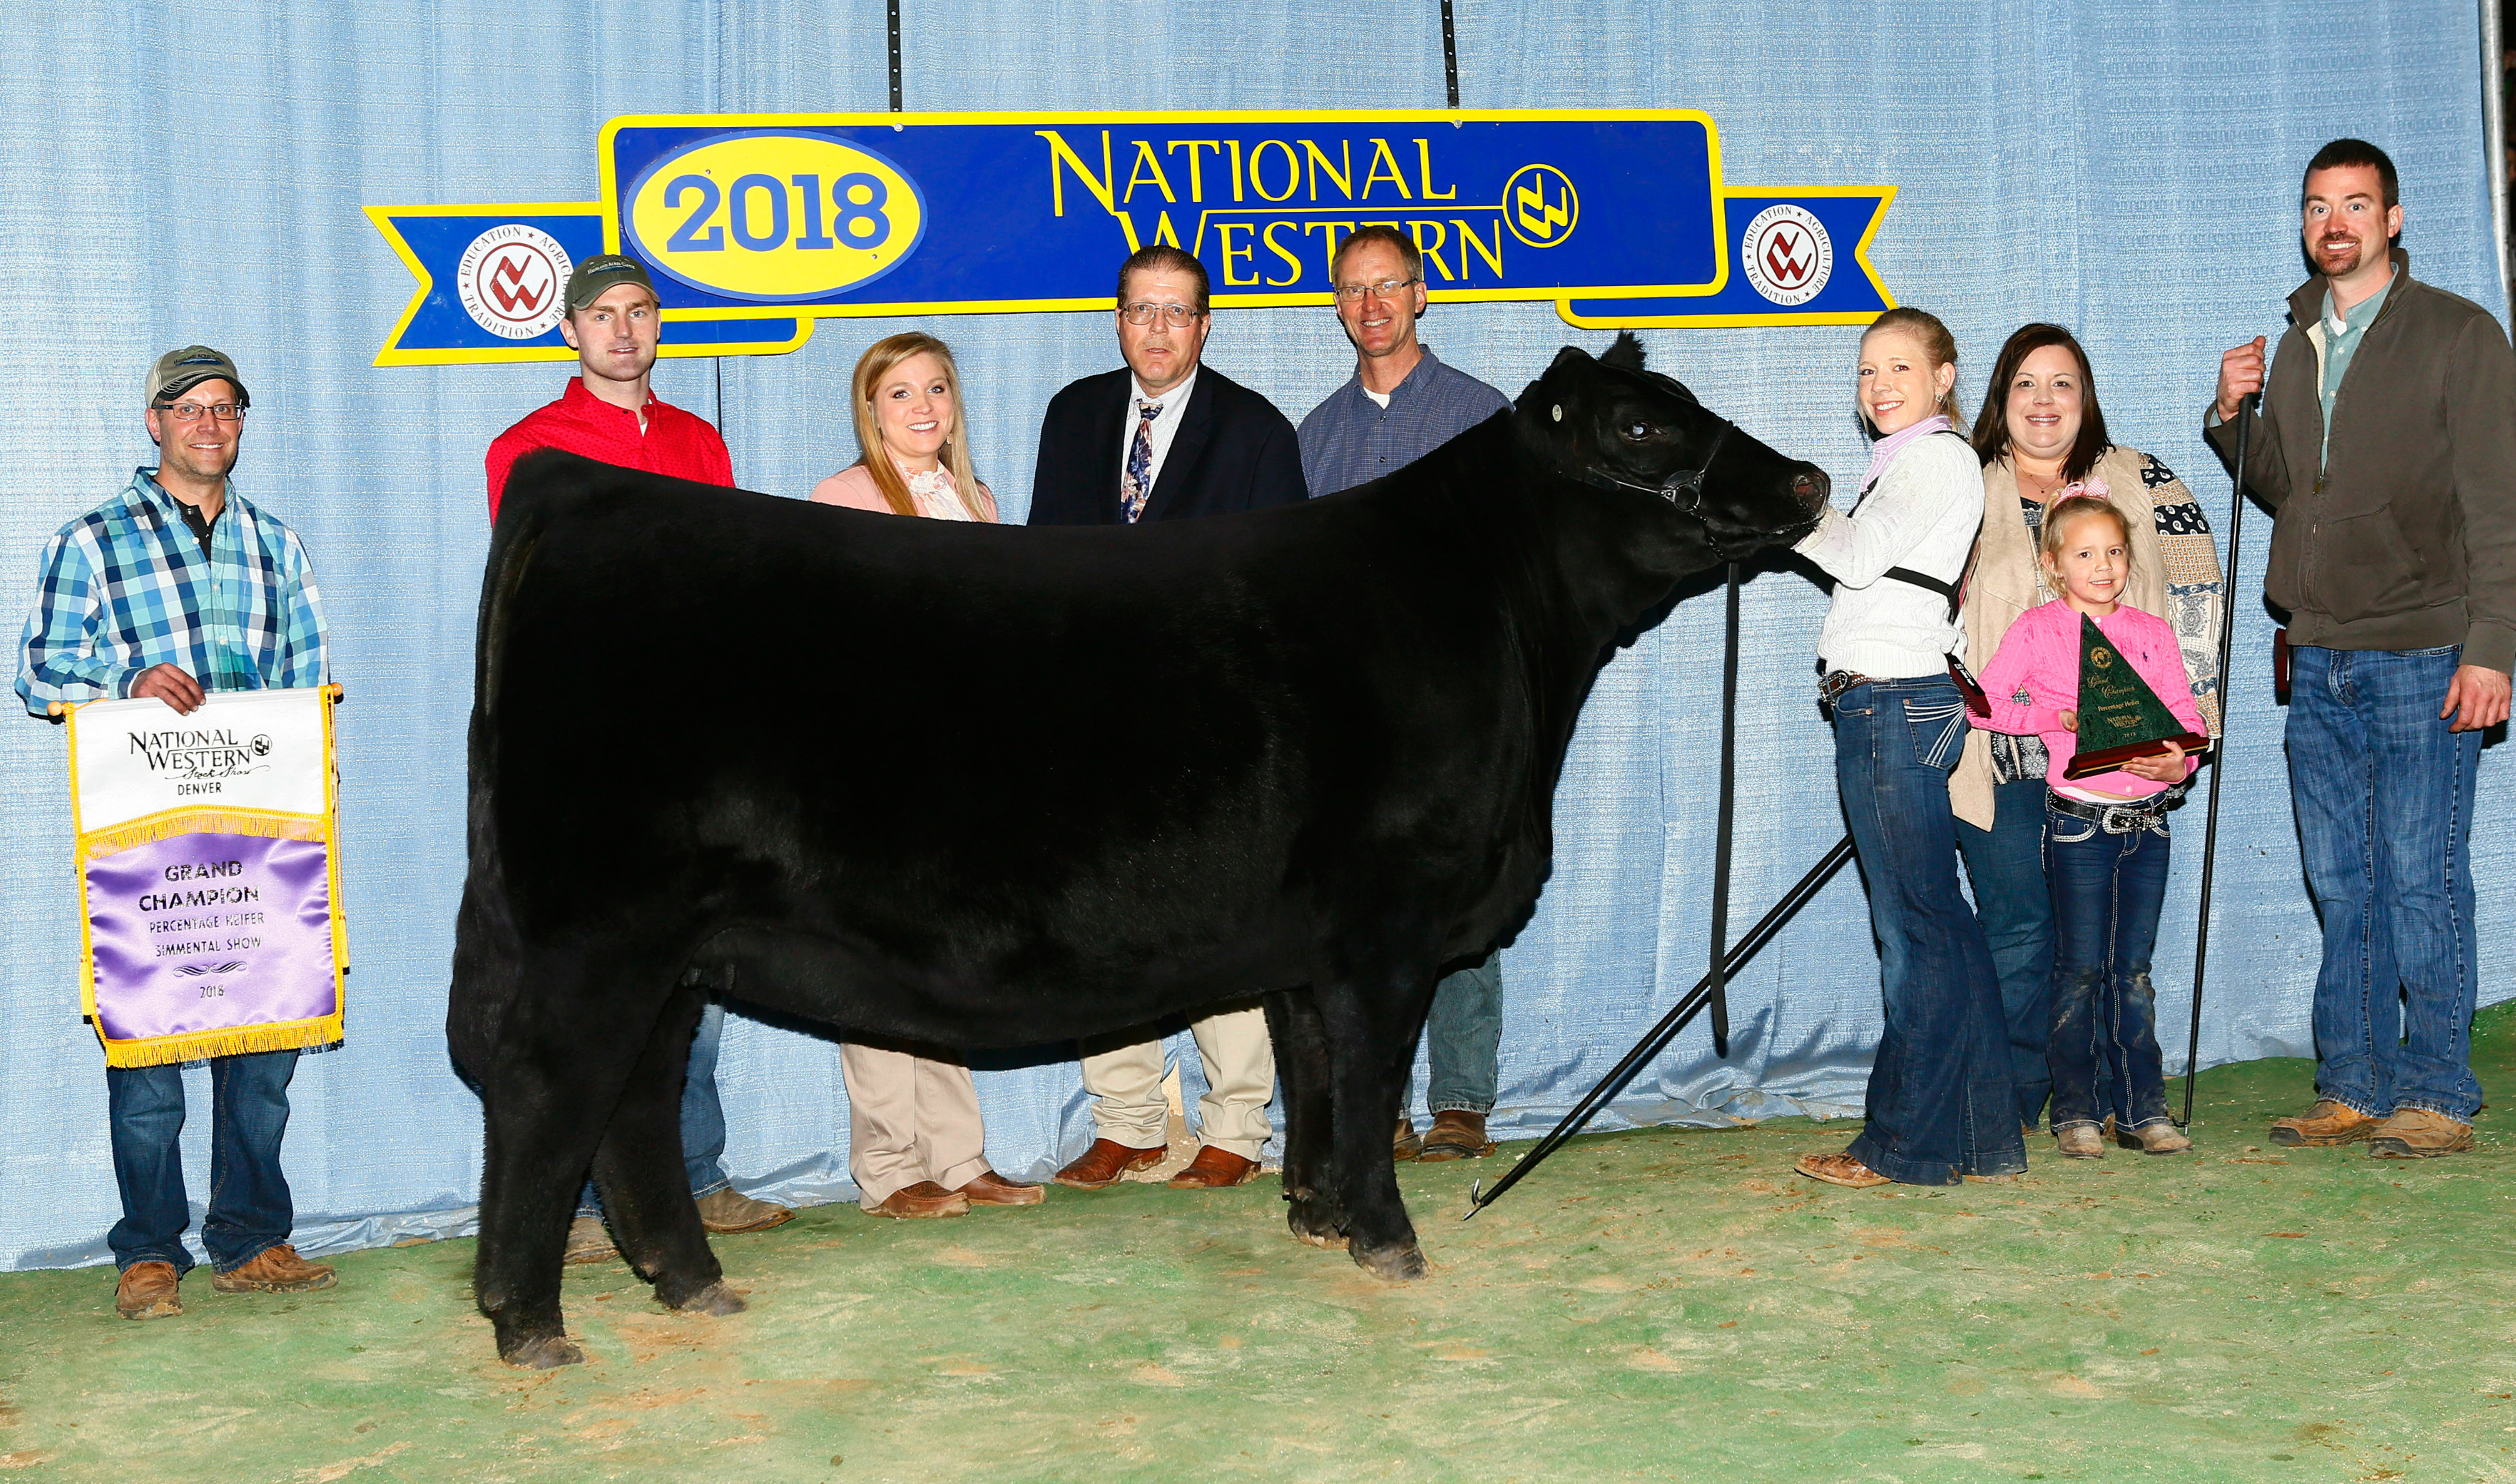 Hook's/JRA Demi 605D 2018 NWSS Grand Champion Percentage Heifer